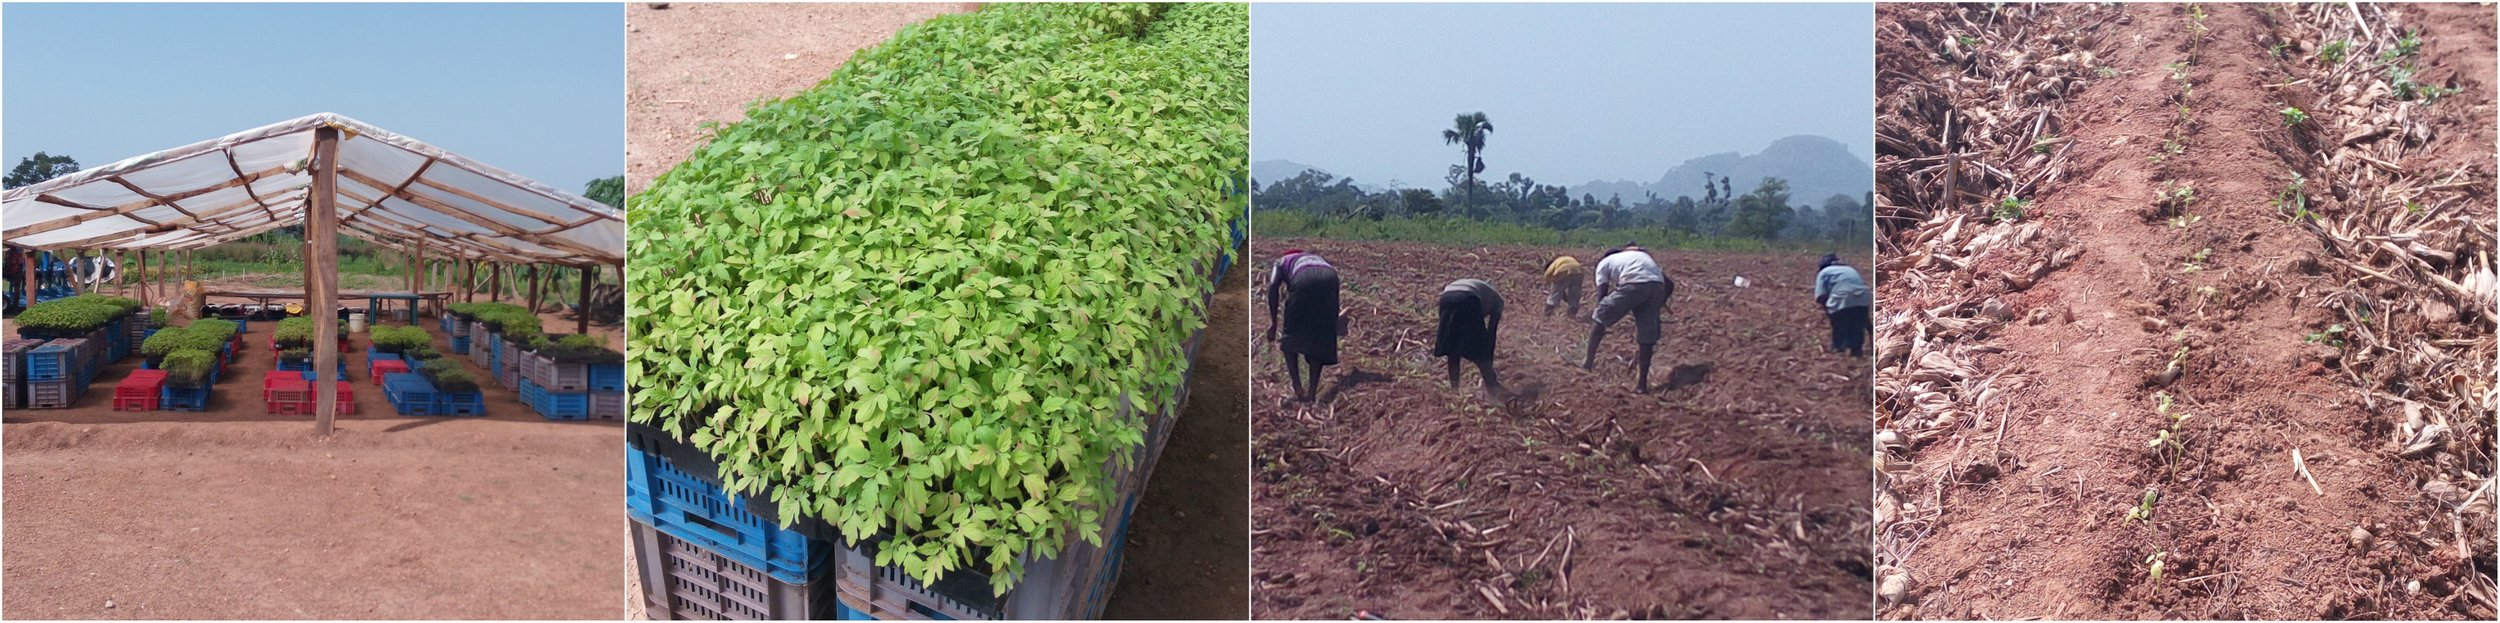 Left to right: 1. Tomato Jos' greenhouse packed with tomato seedlings, 2. Seedlings ready for transplanting, 3. Farm laborers cultivating the farmland, 4. Marked, dug, transplanted, and irrigated...the tomato seedlings are finally home.